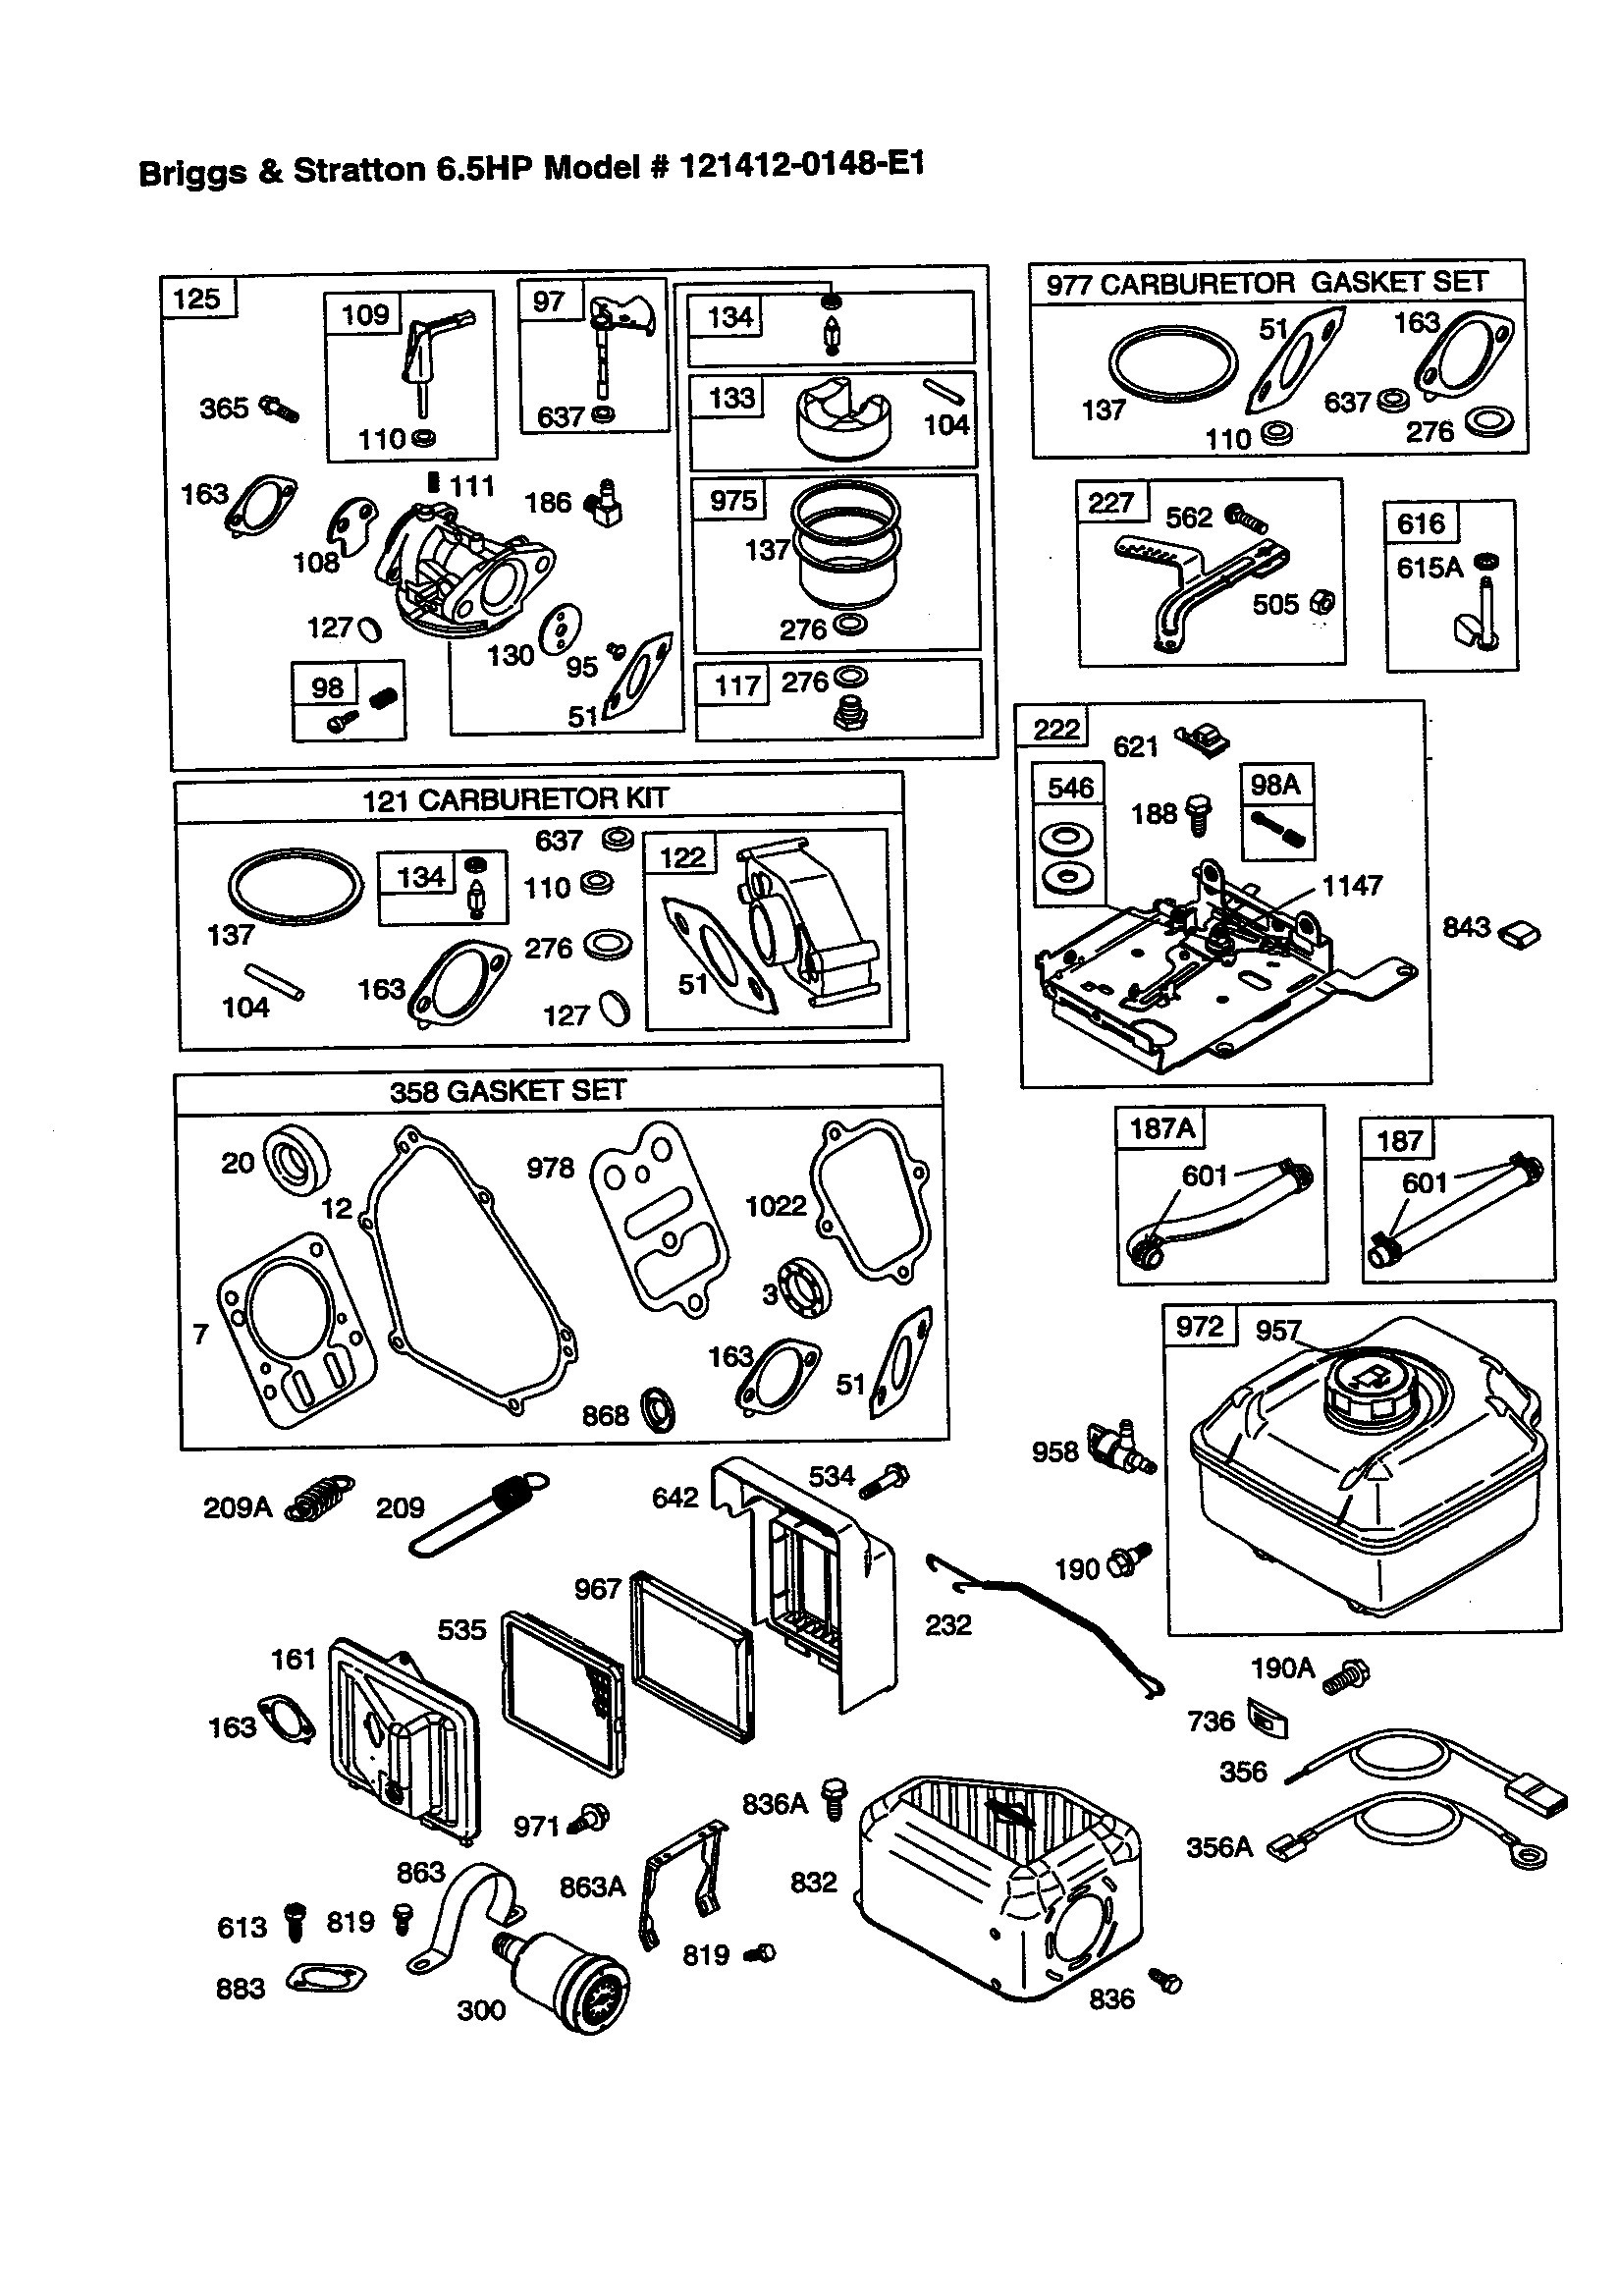 Briggs and Stratton Lawn Mower Parts Diagram Briggs and Stratton 6 75 Engine Diagram Wiring Library • Of Briggs and Stratton Lawn Mower Parts Diagram Briggs and Stratton Recoil Starter assembly Diagram – Awesome